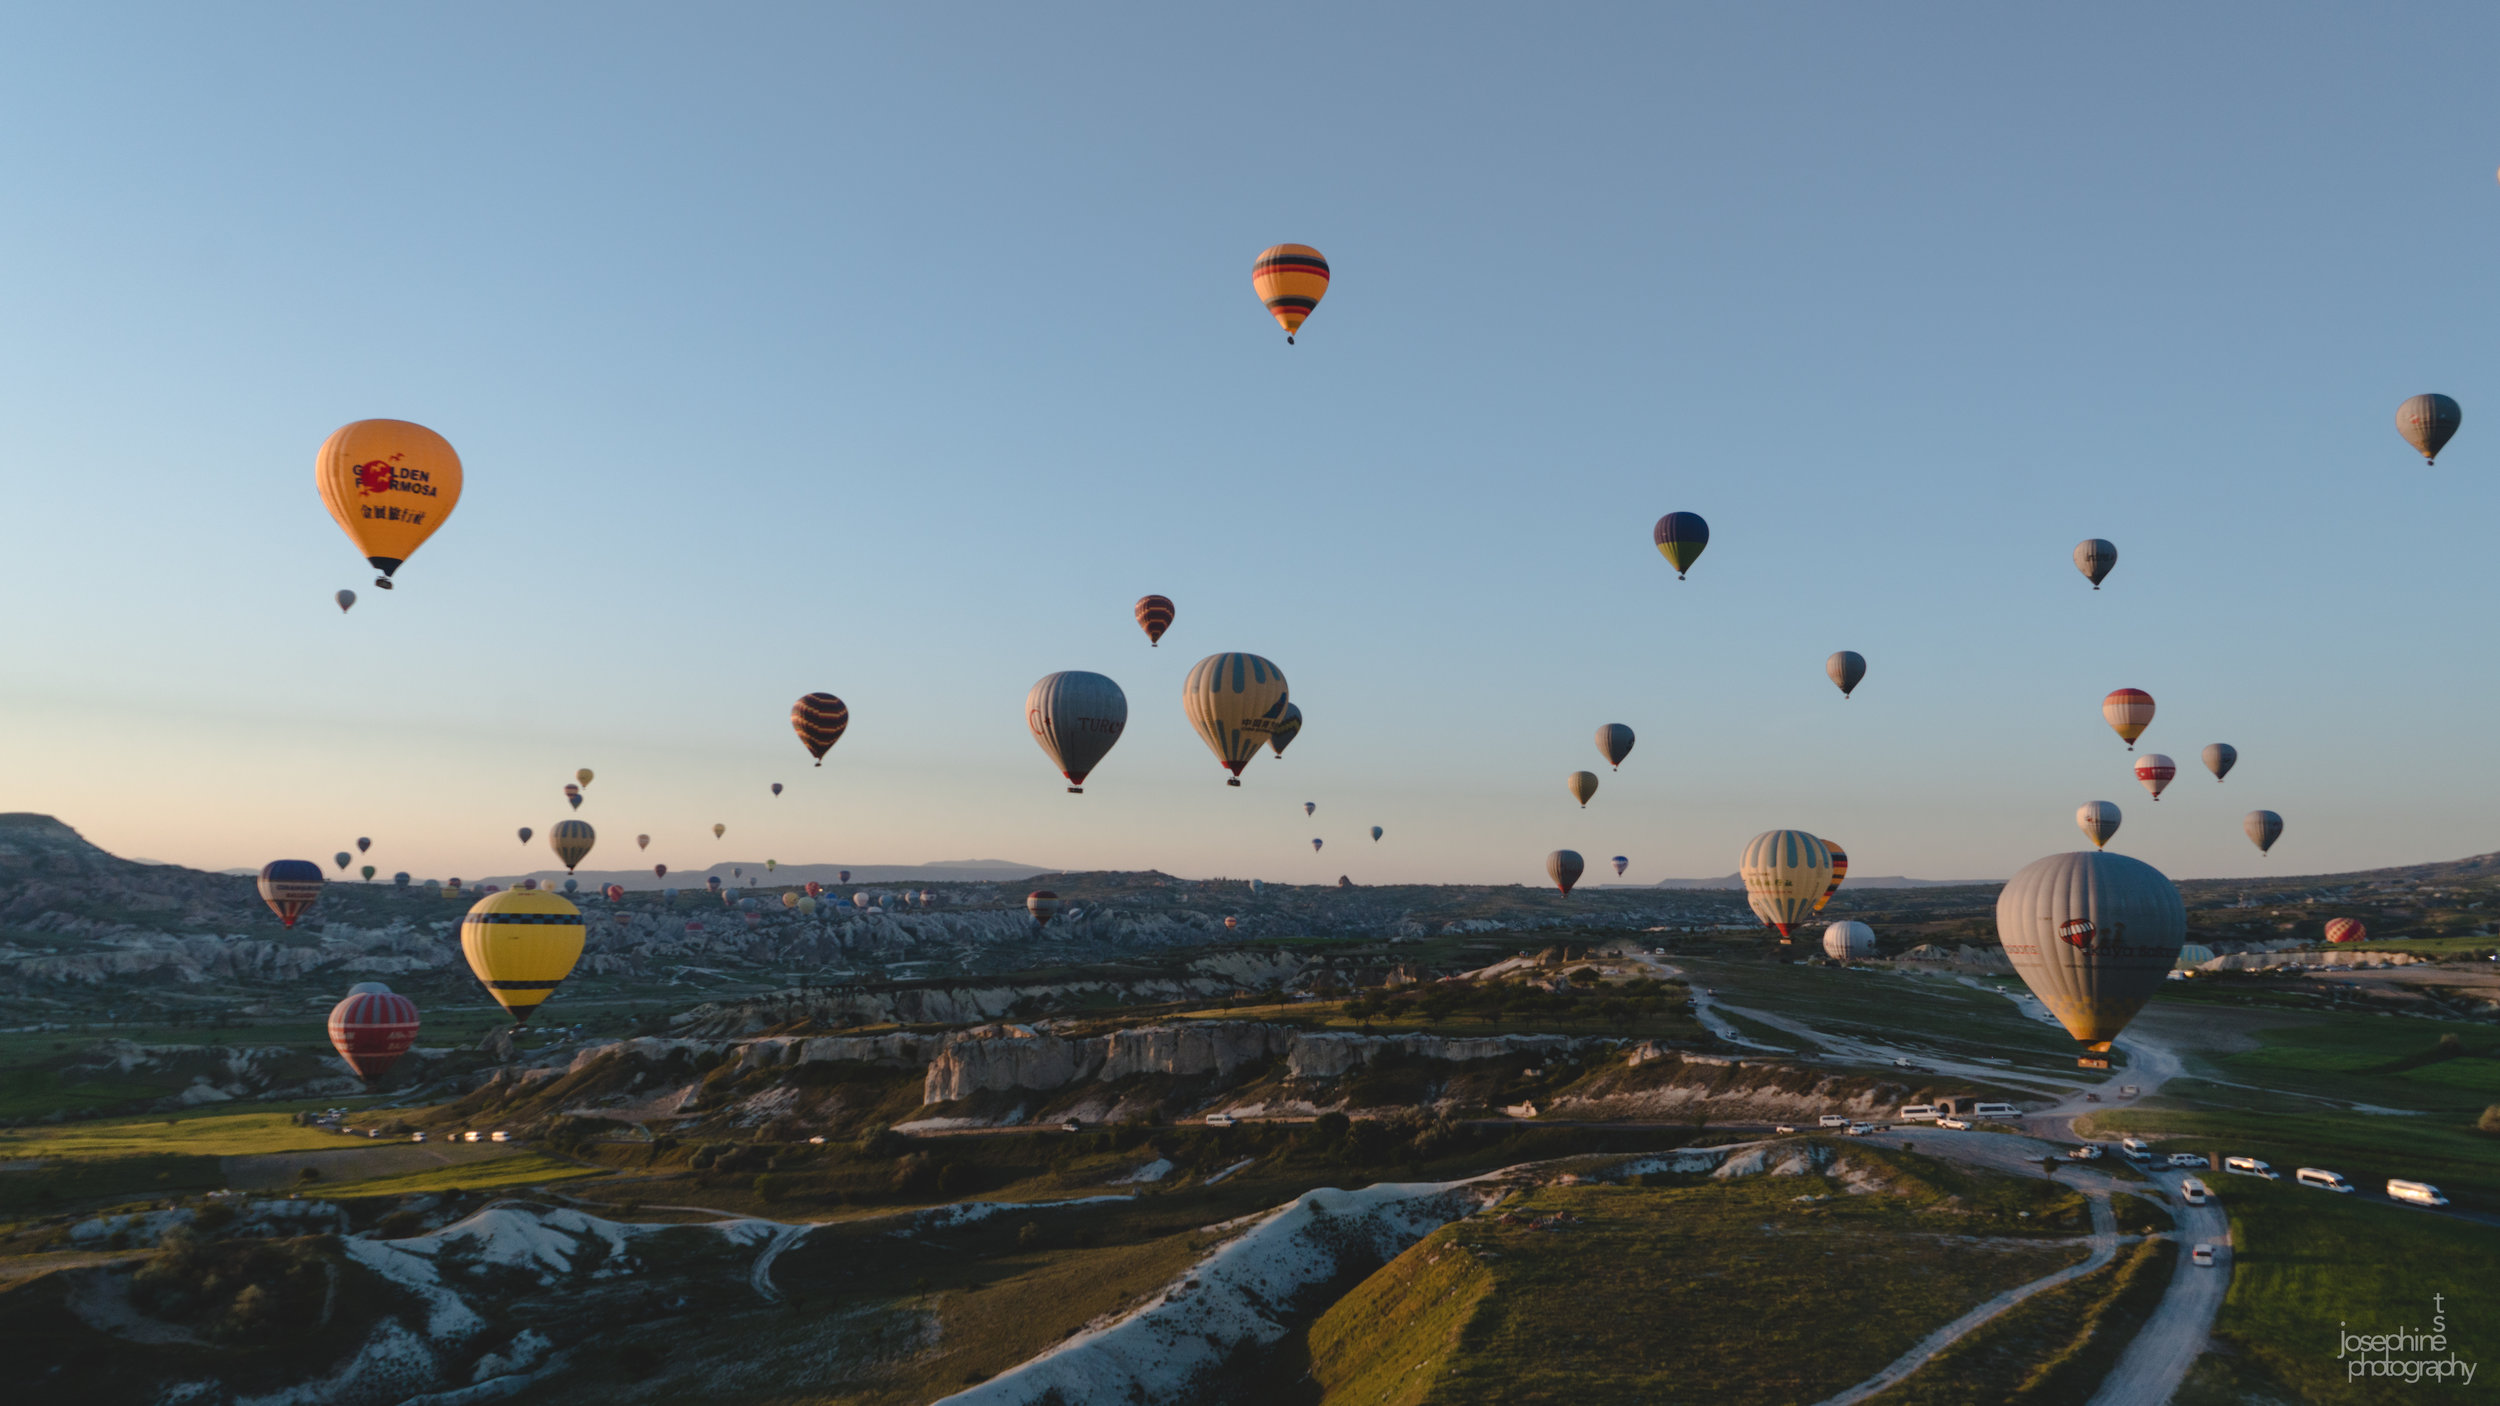 Views of Cappadocia from the hot air balloon ride